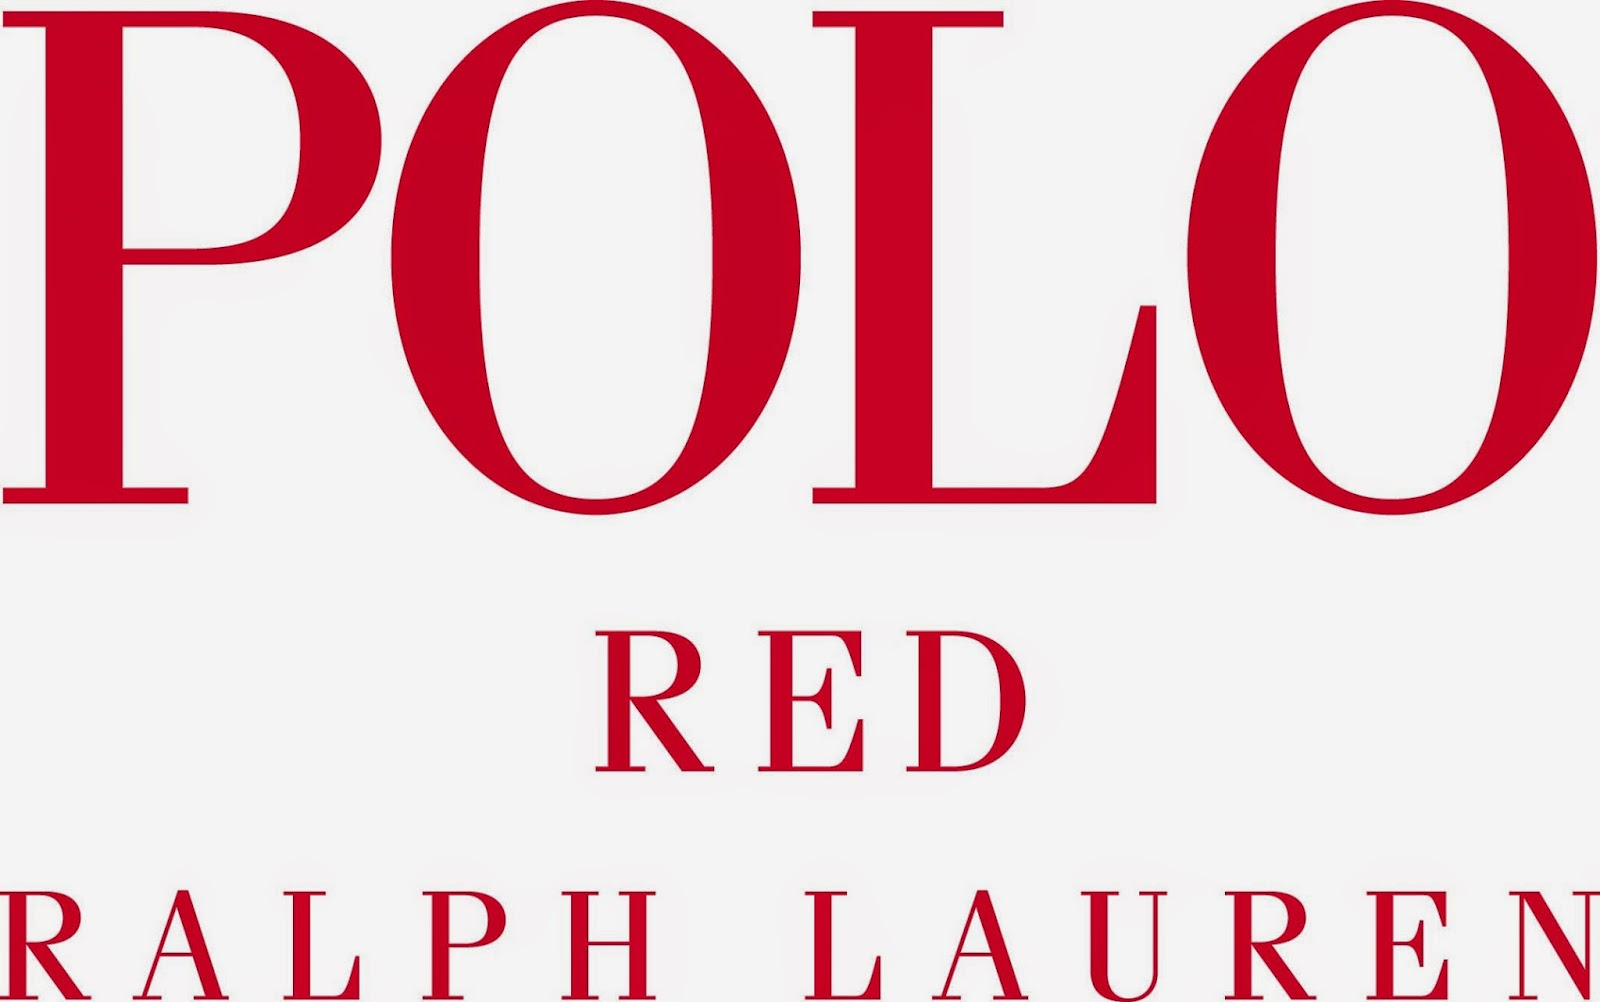 red polo logo